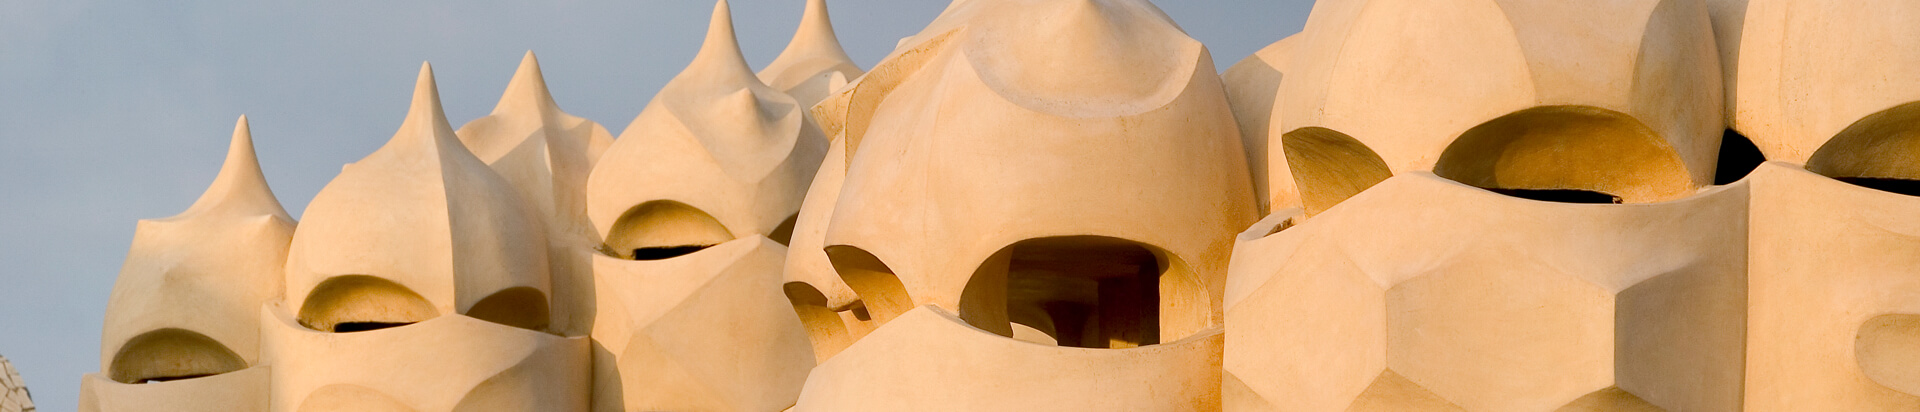 avis legal terrat casa mila barcelona